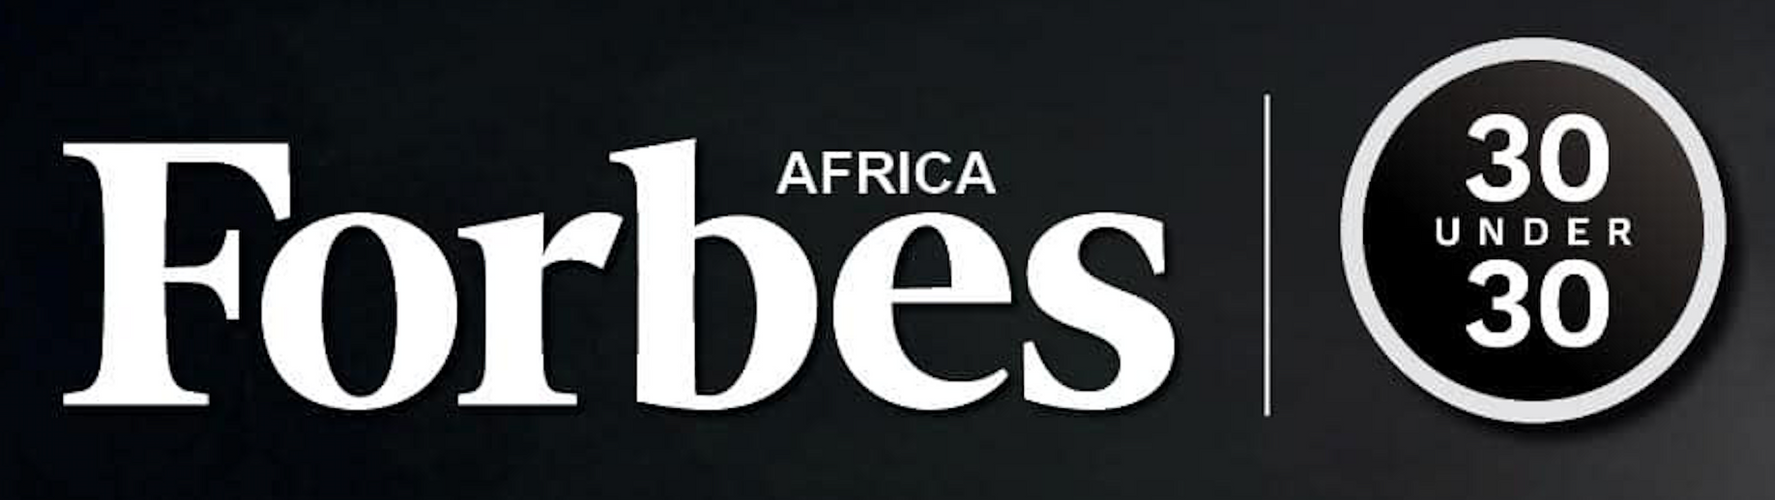 Forbes Africa 30 Under 30